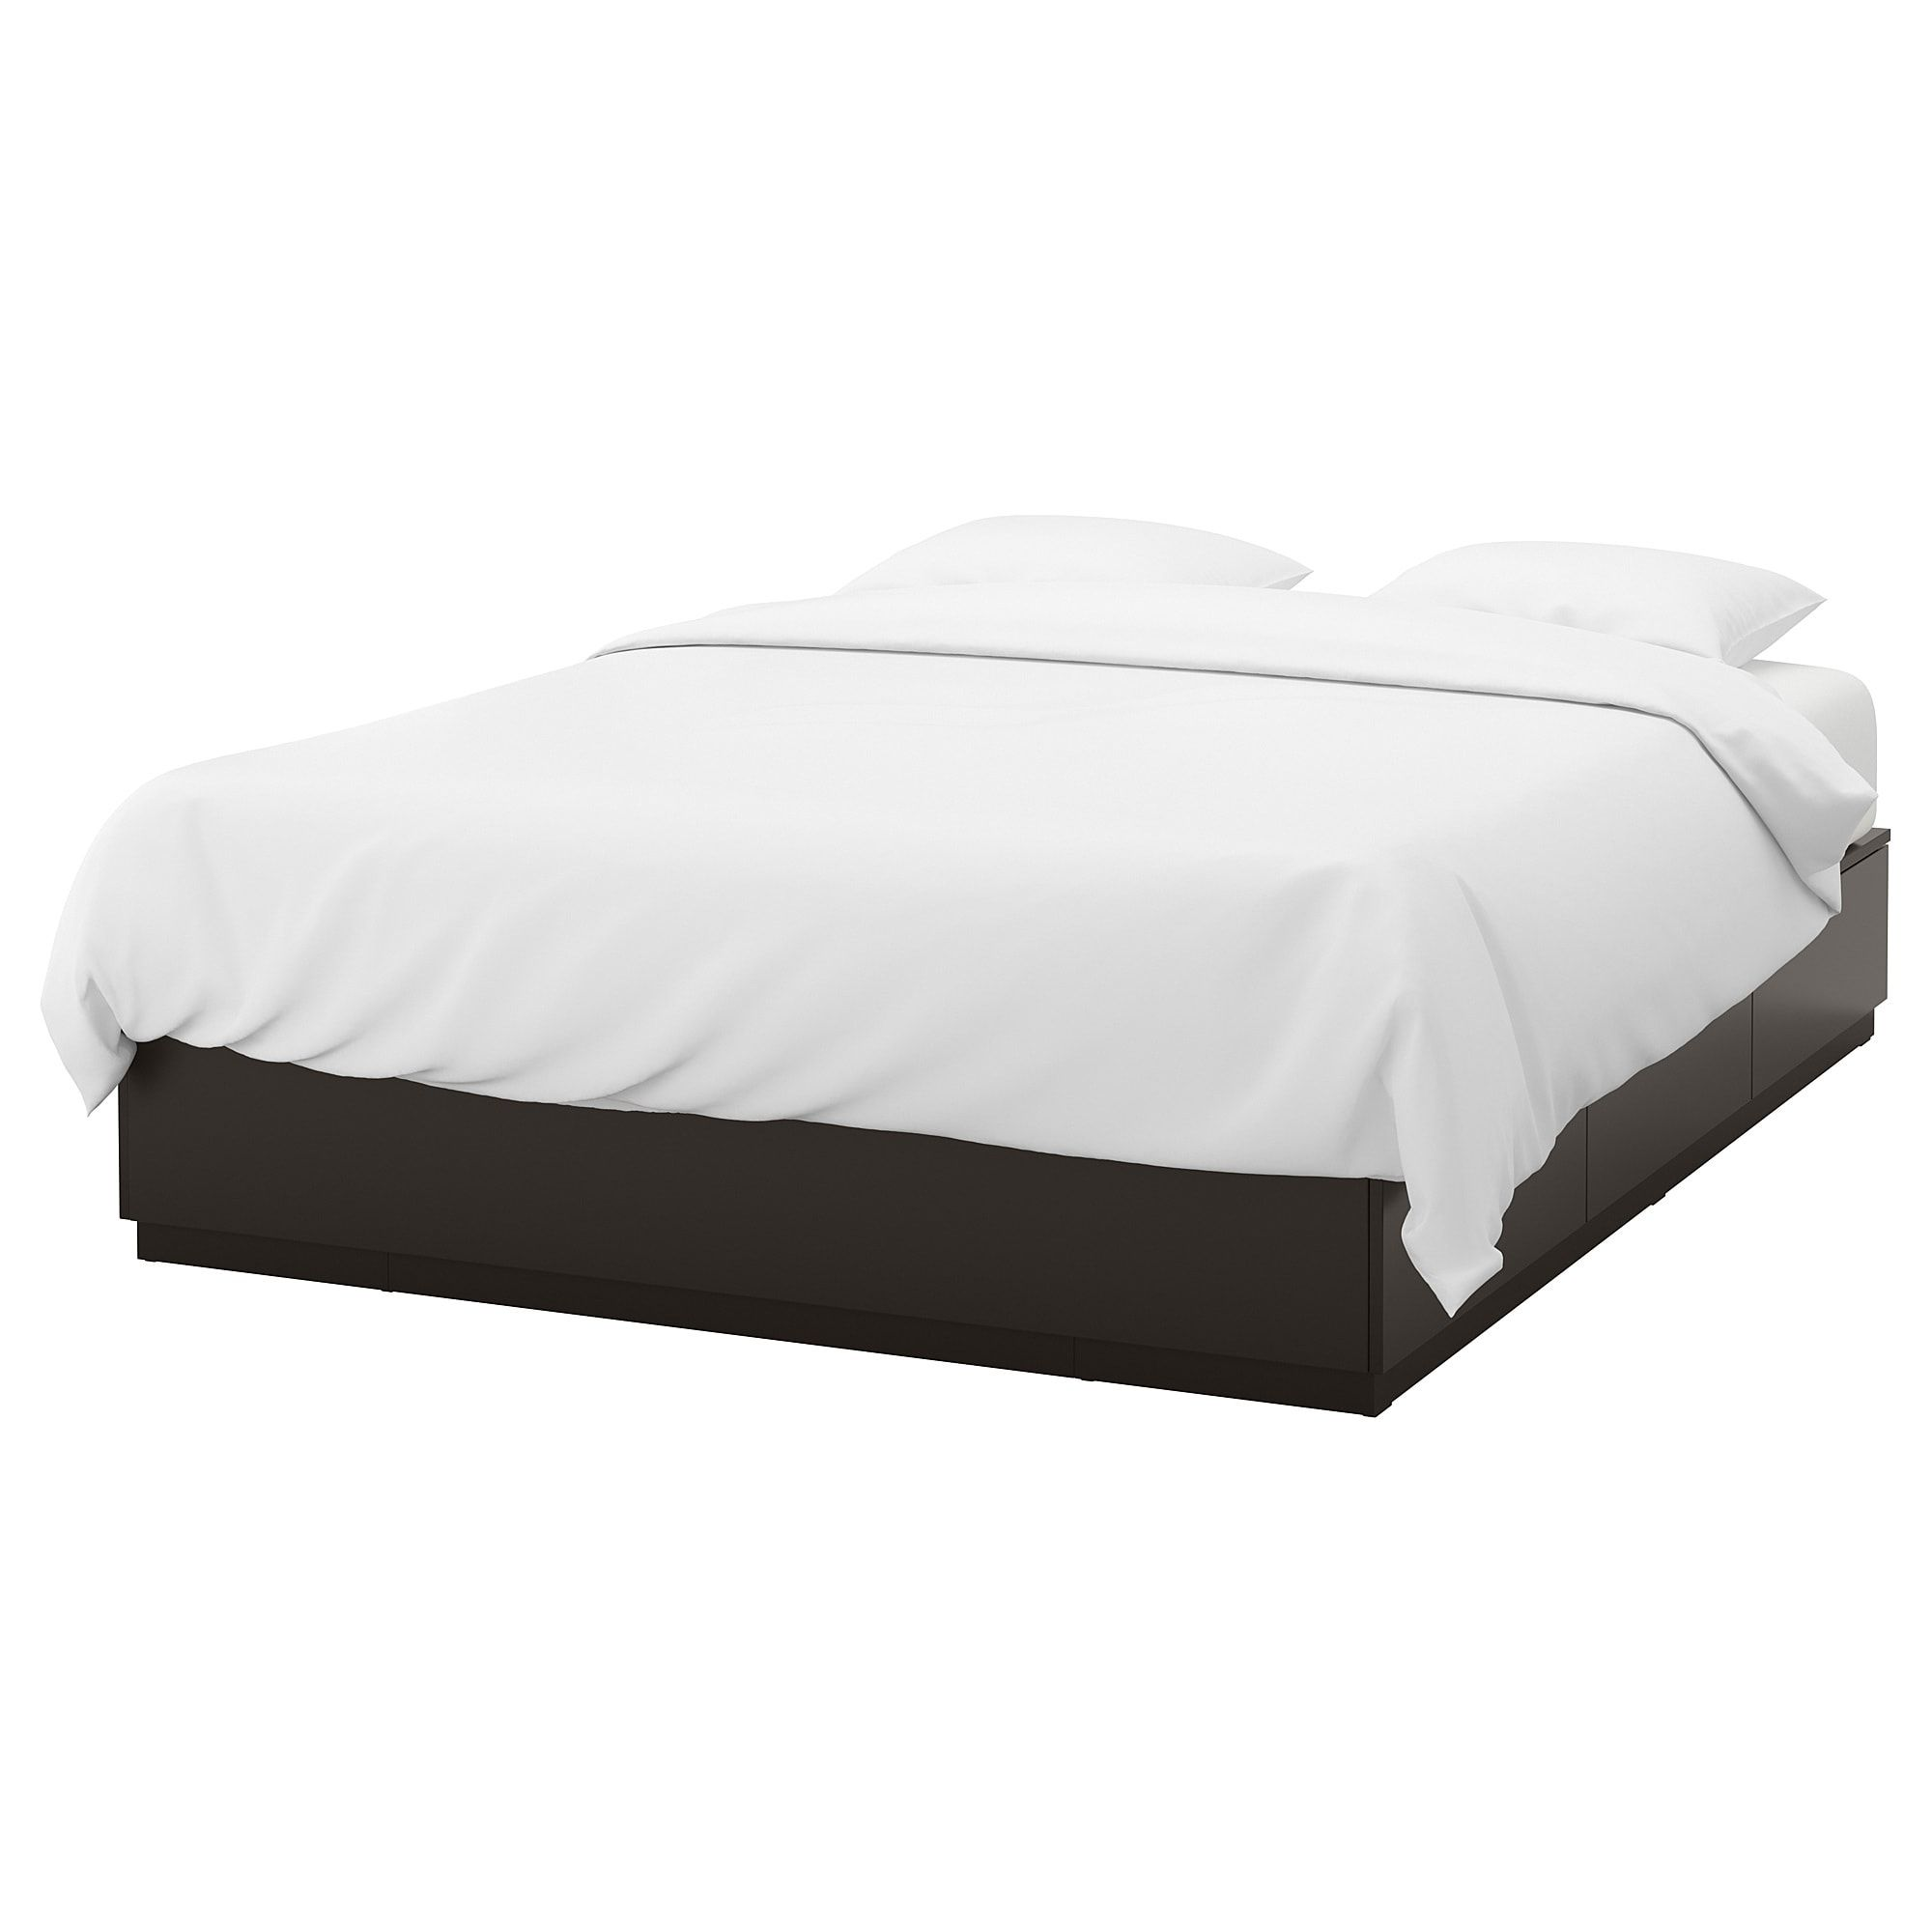 Ikea Nordli Anthracite Bed Frame With Storage Bed Frame With Storage Bed Frame Headboards For Beds